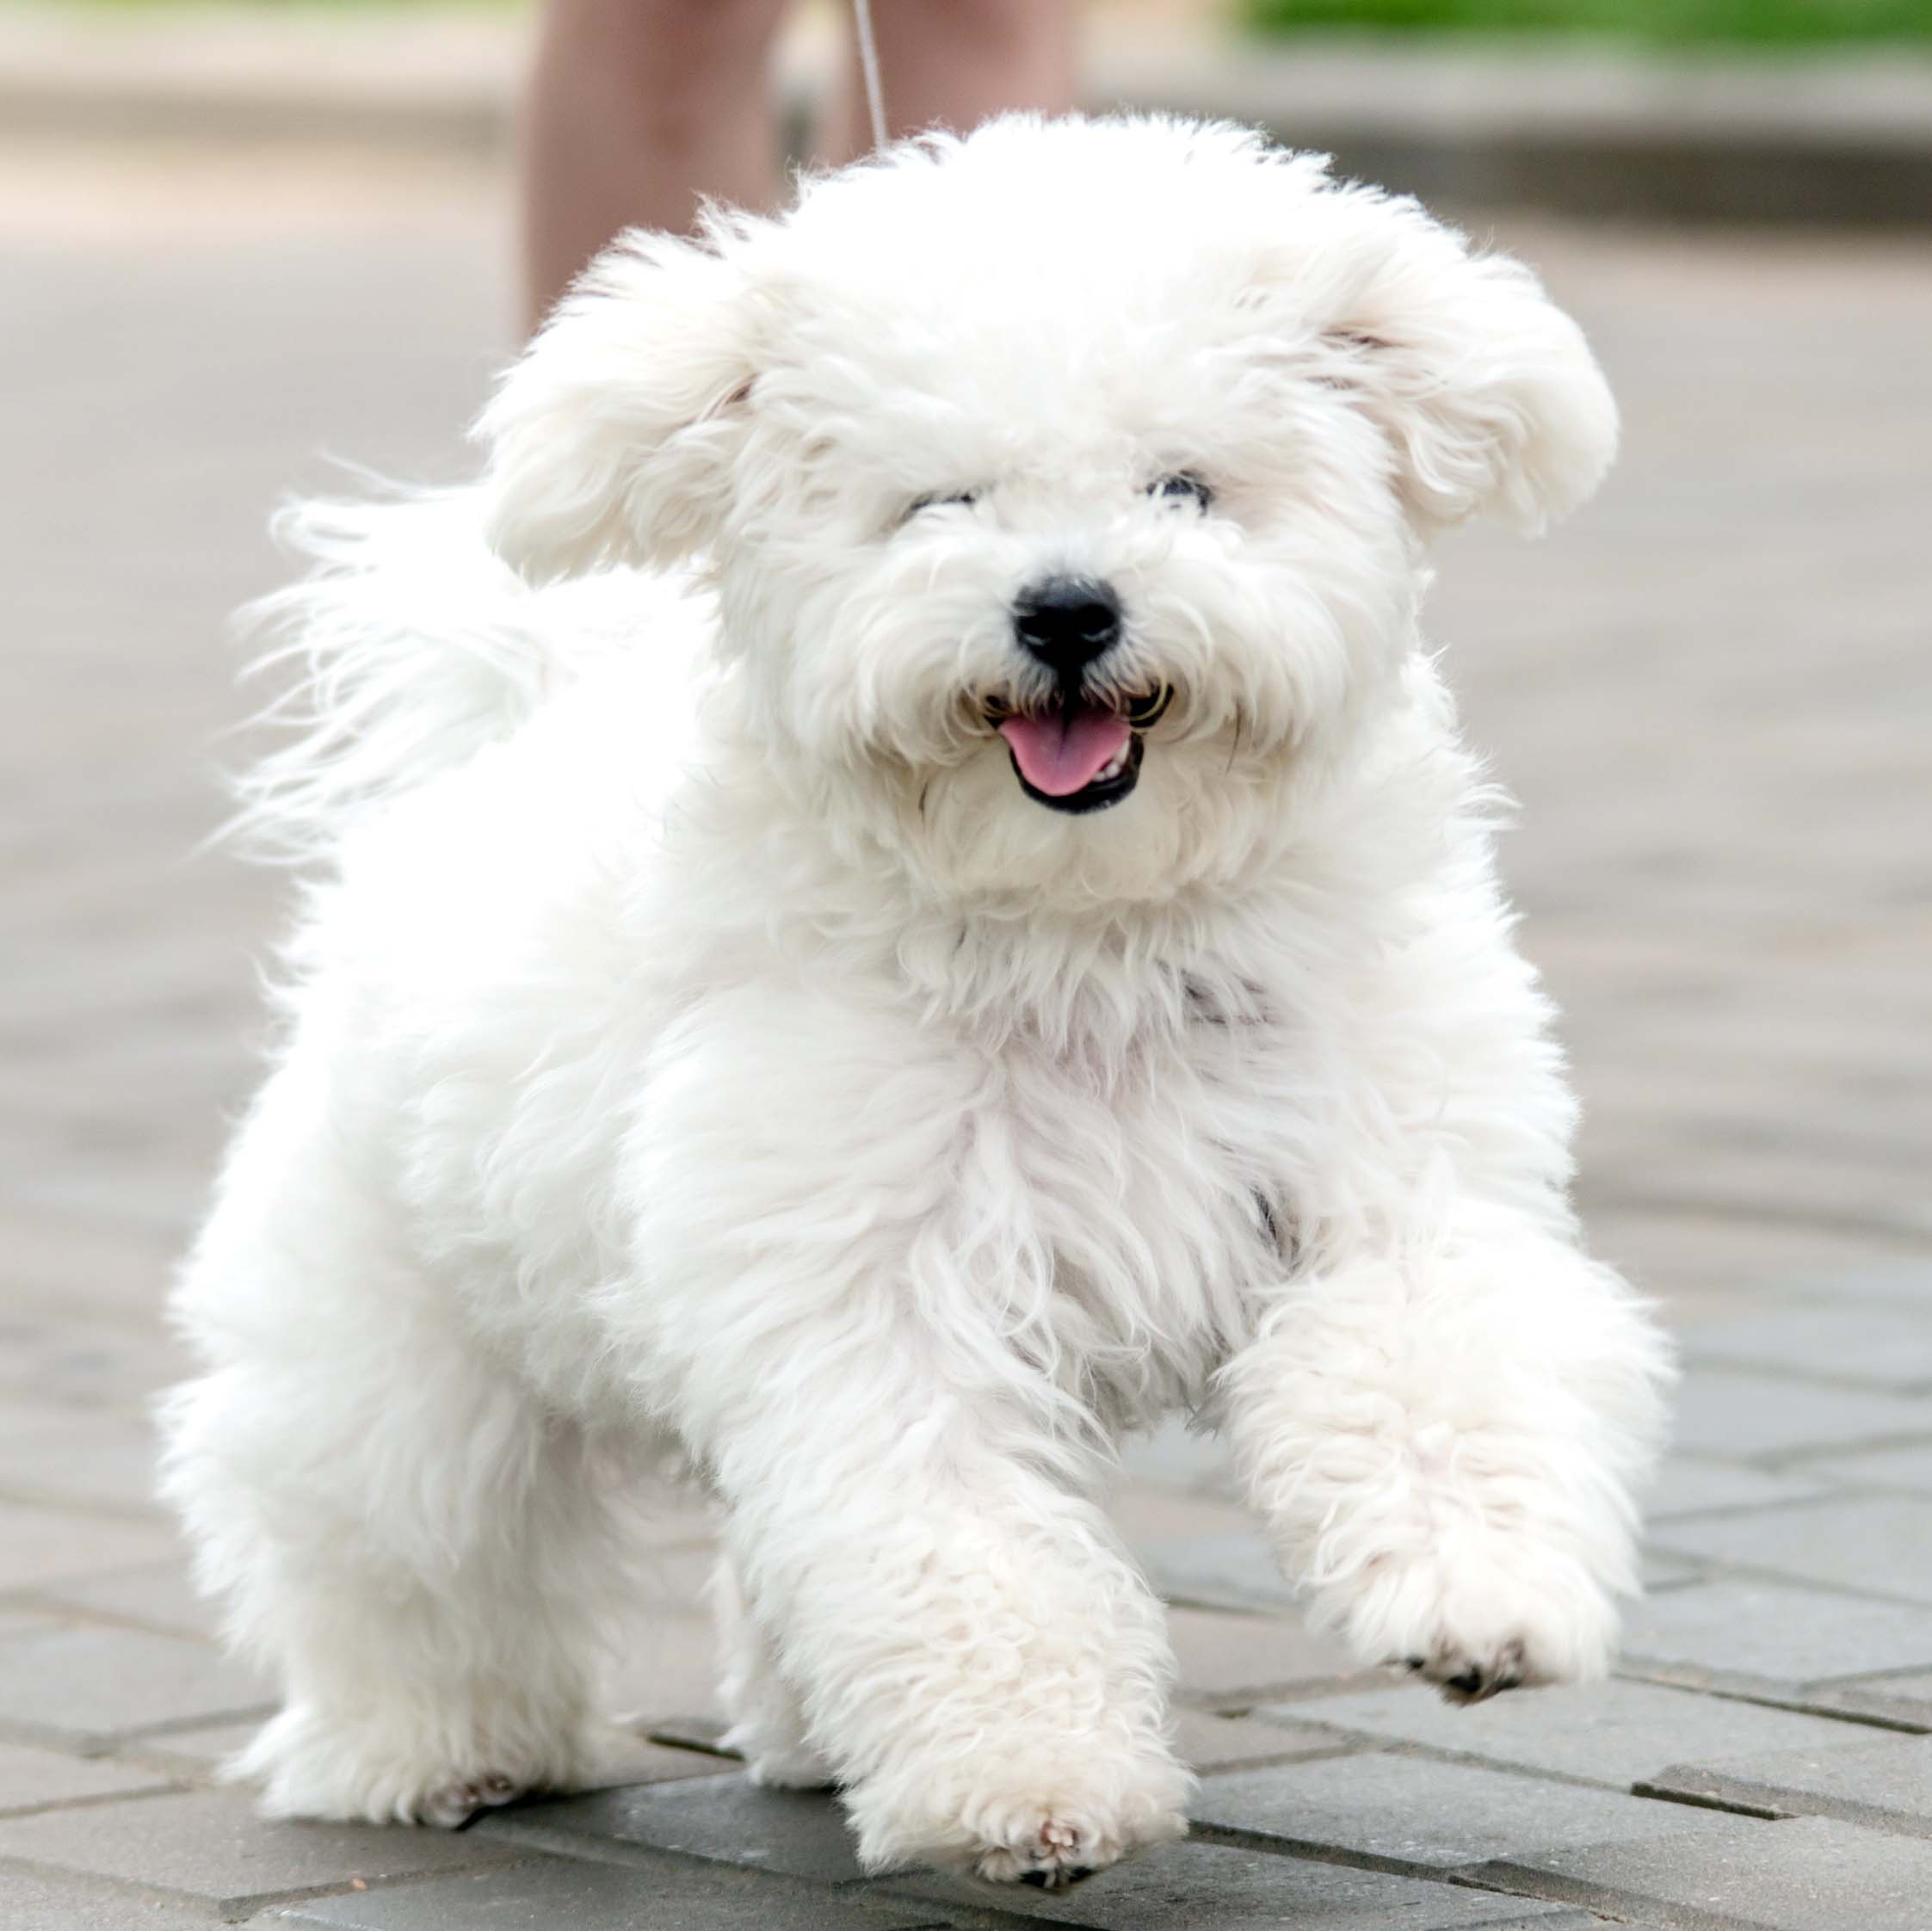 Bichon Frise Puppies Animal Kingdom Arizona